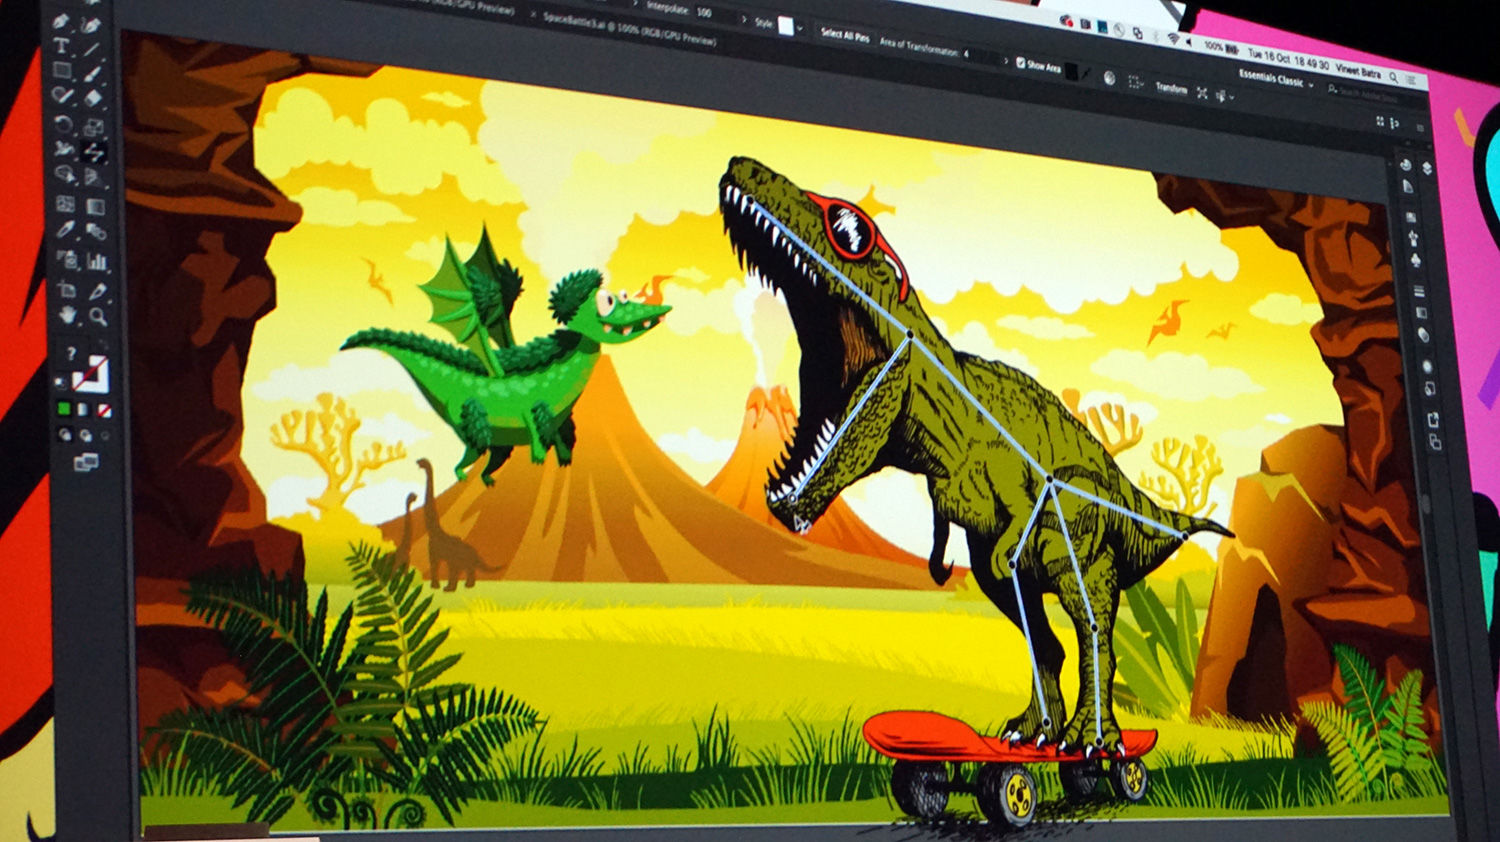 Adobe's groundbreaking prototypes of new features and apps for Creative Cloud